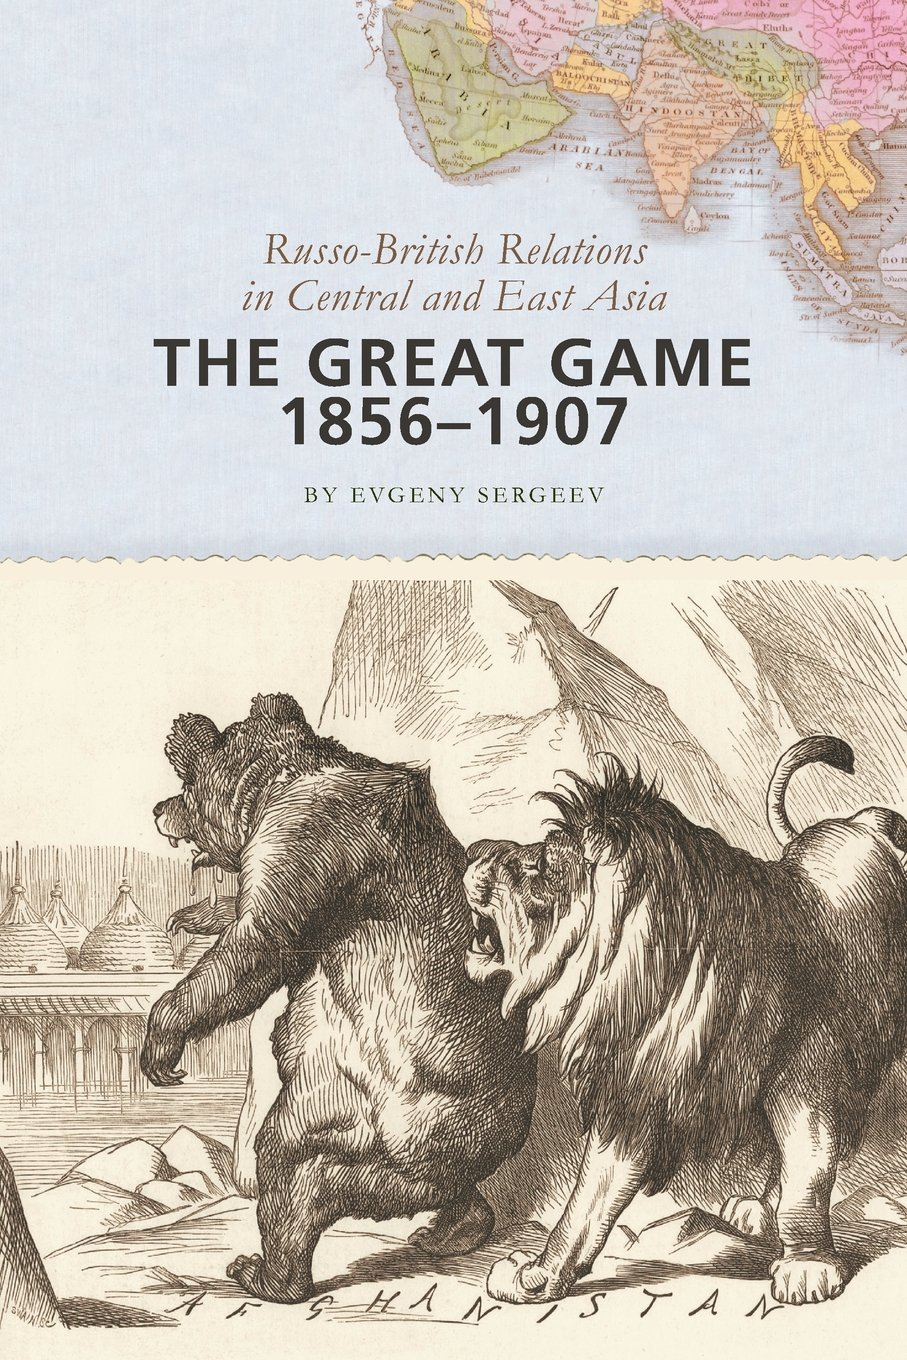 The Great Game, 1856-1907: Russo-British Relations in Central and East Asia:  Evgeny Sergeev: 9781421415574: Amazon.com: Books